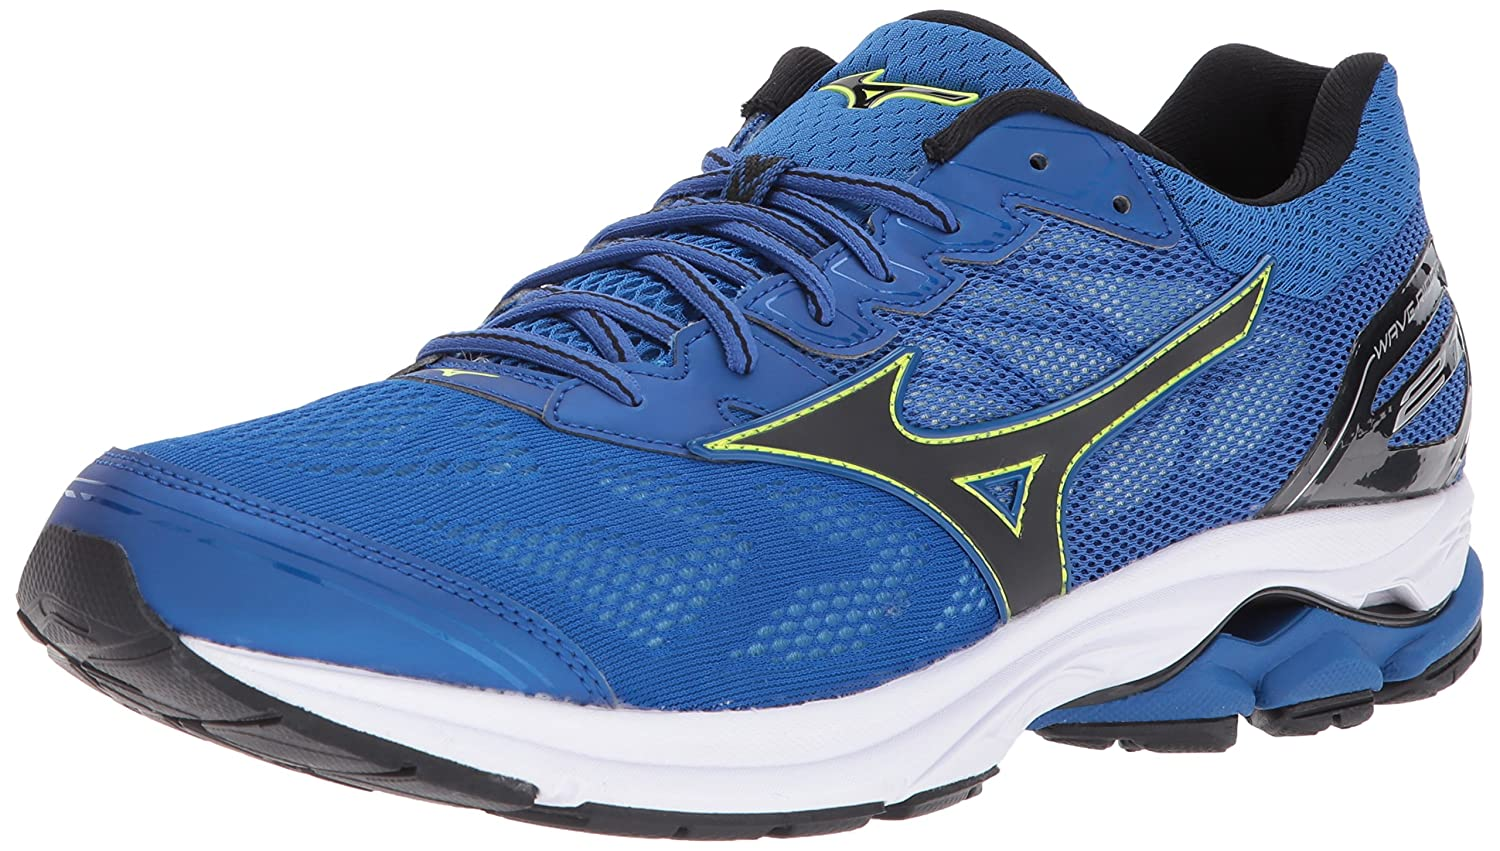 Classic bluee  Black Mizuno Mens Wave Rider 21 Running shoes